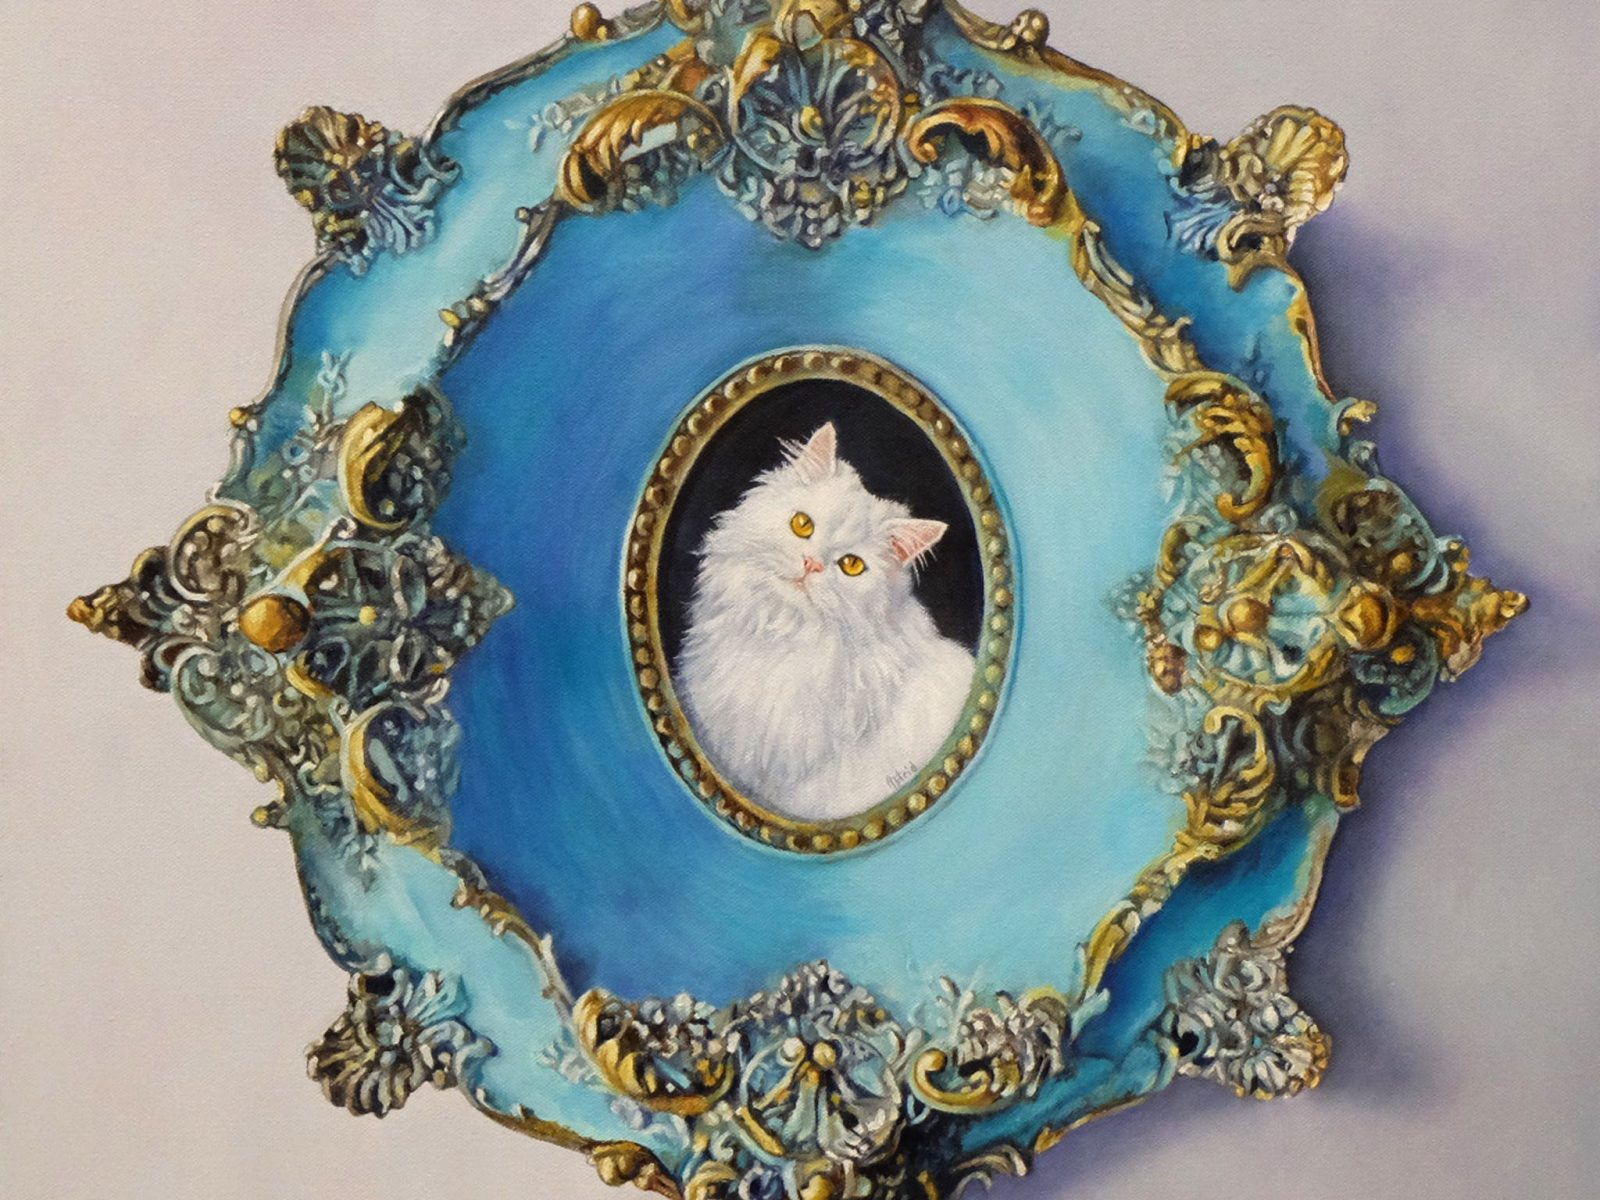 A painting of a white kitty cat in an elaborate turquoise gold detailed frame